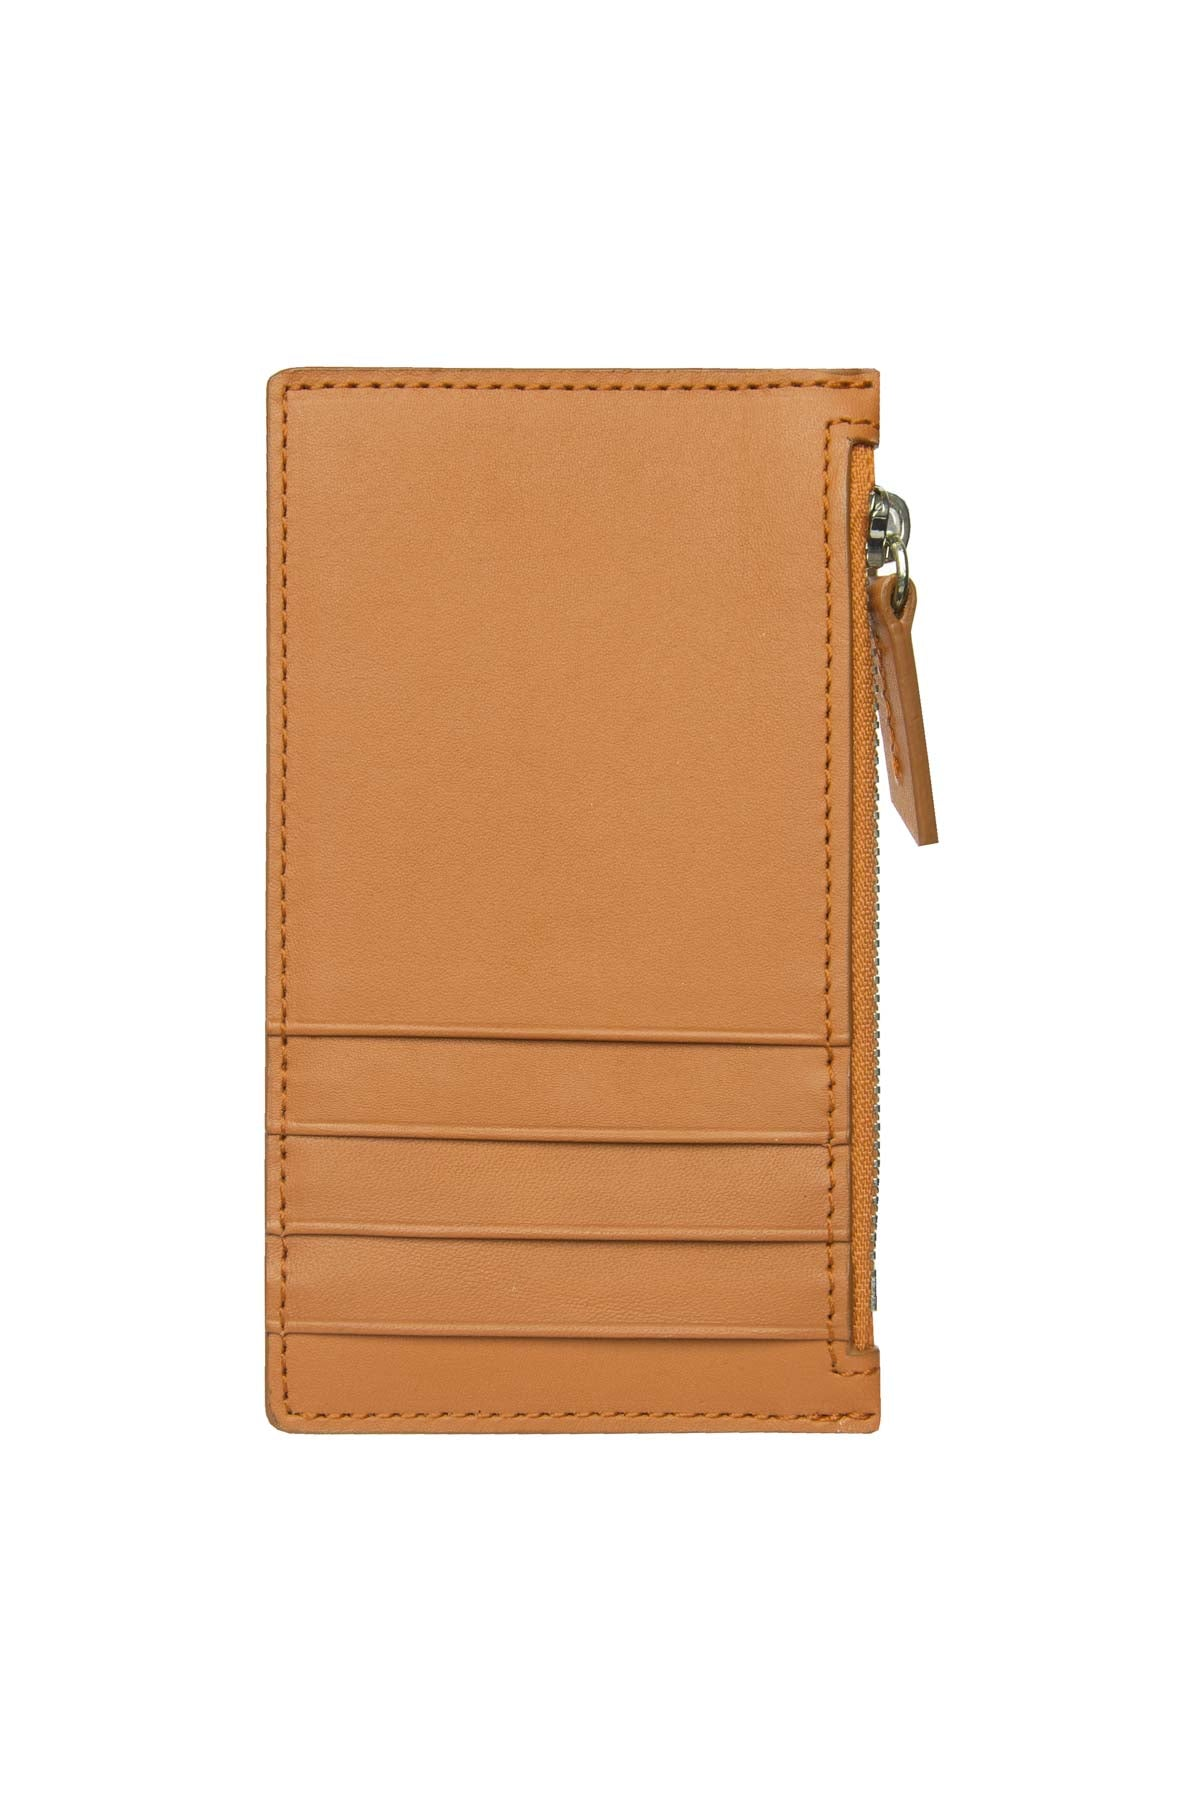 Leather Zip Card Holder - Natural